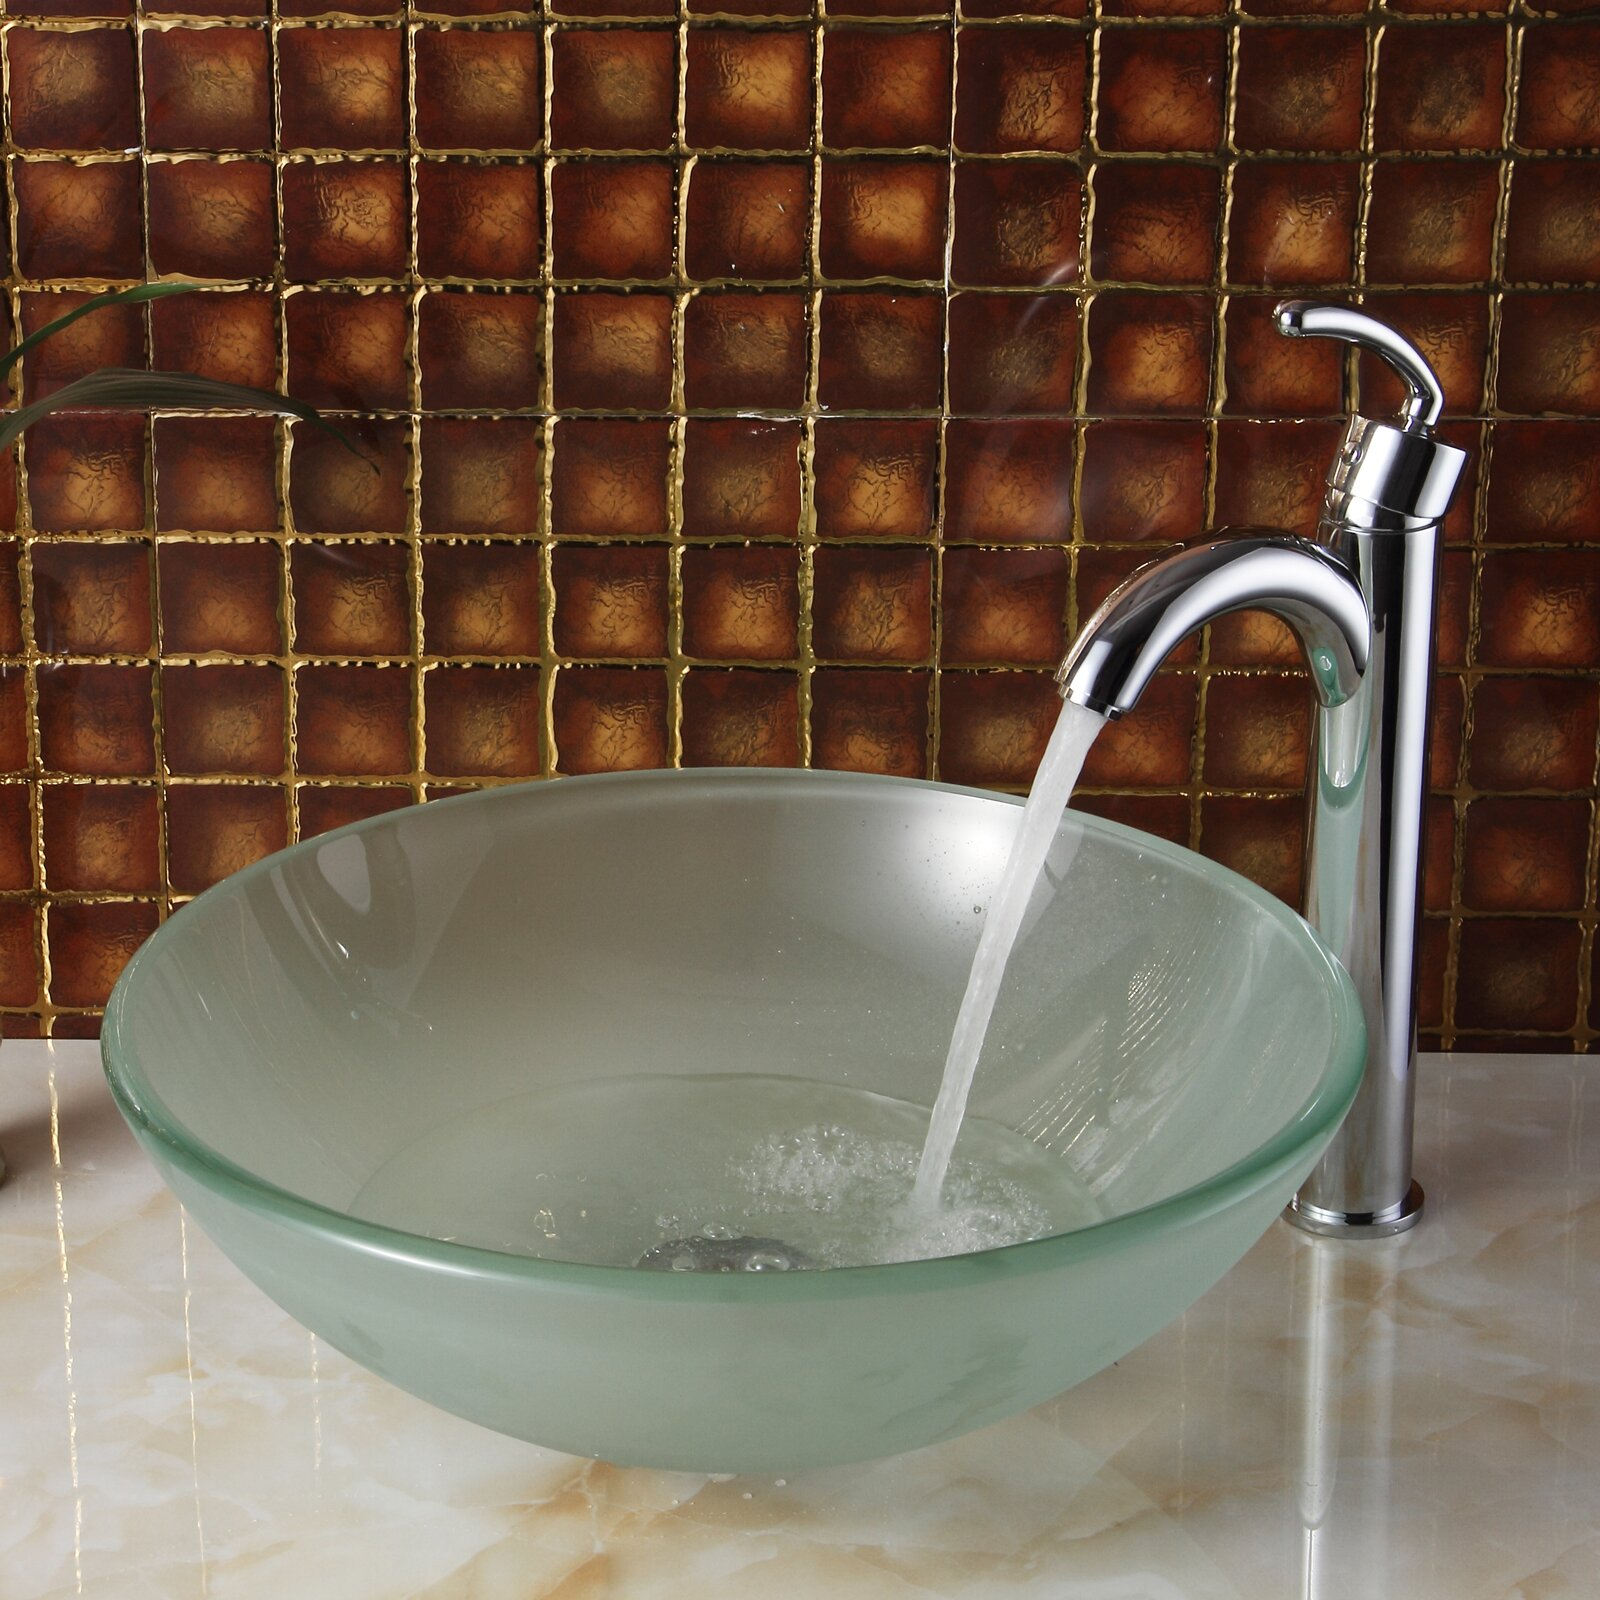 Double layered tempered glass round bowl vessel bathroom - Bathroom tempered glass vessel sink ...